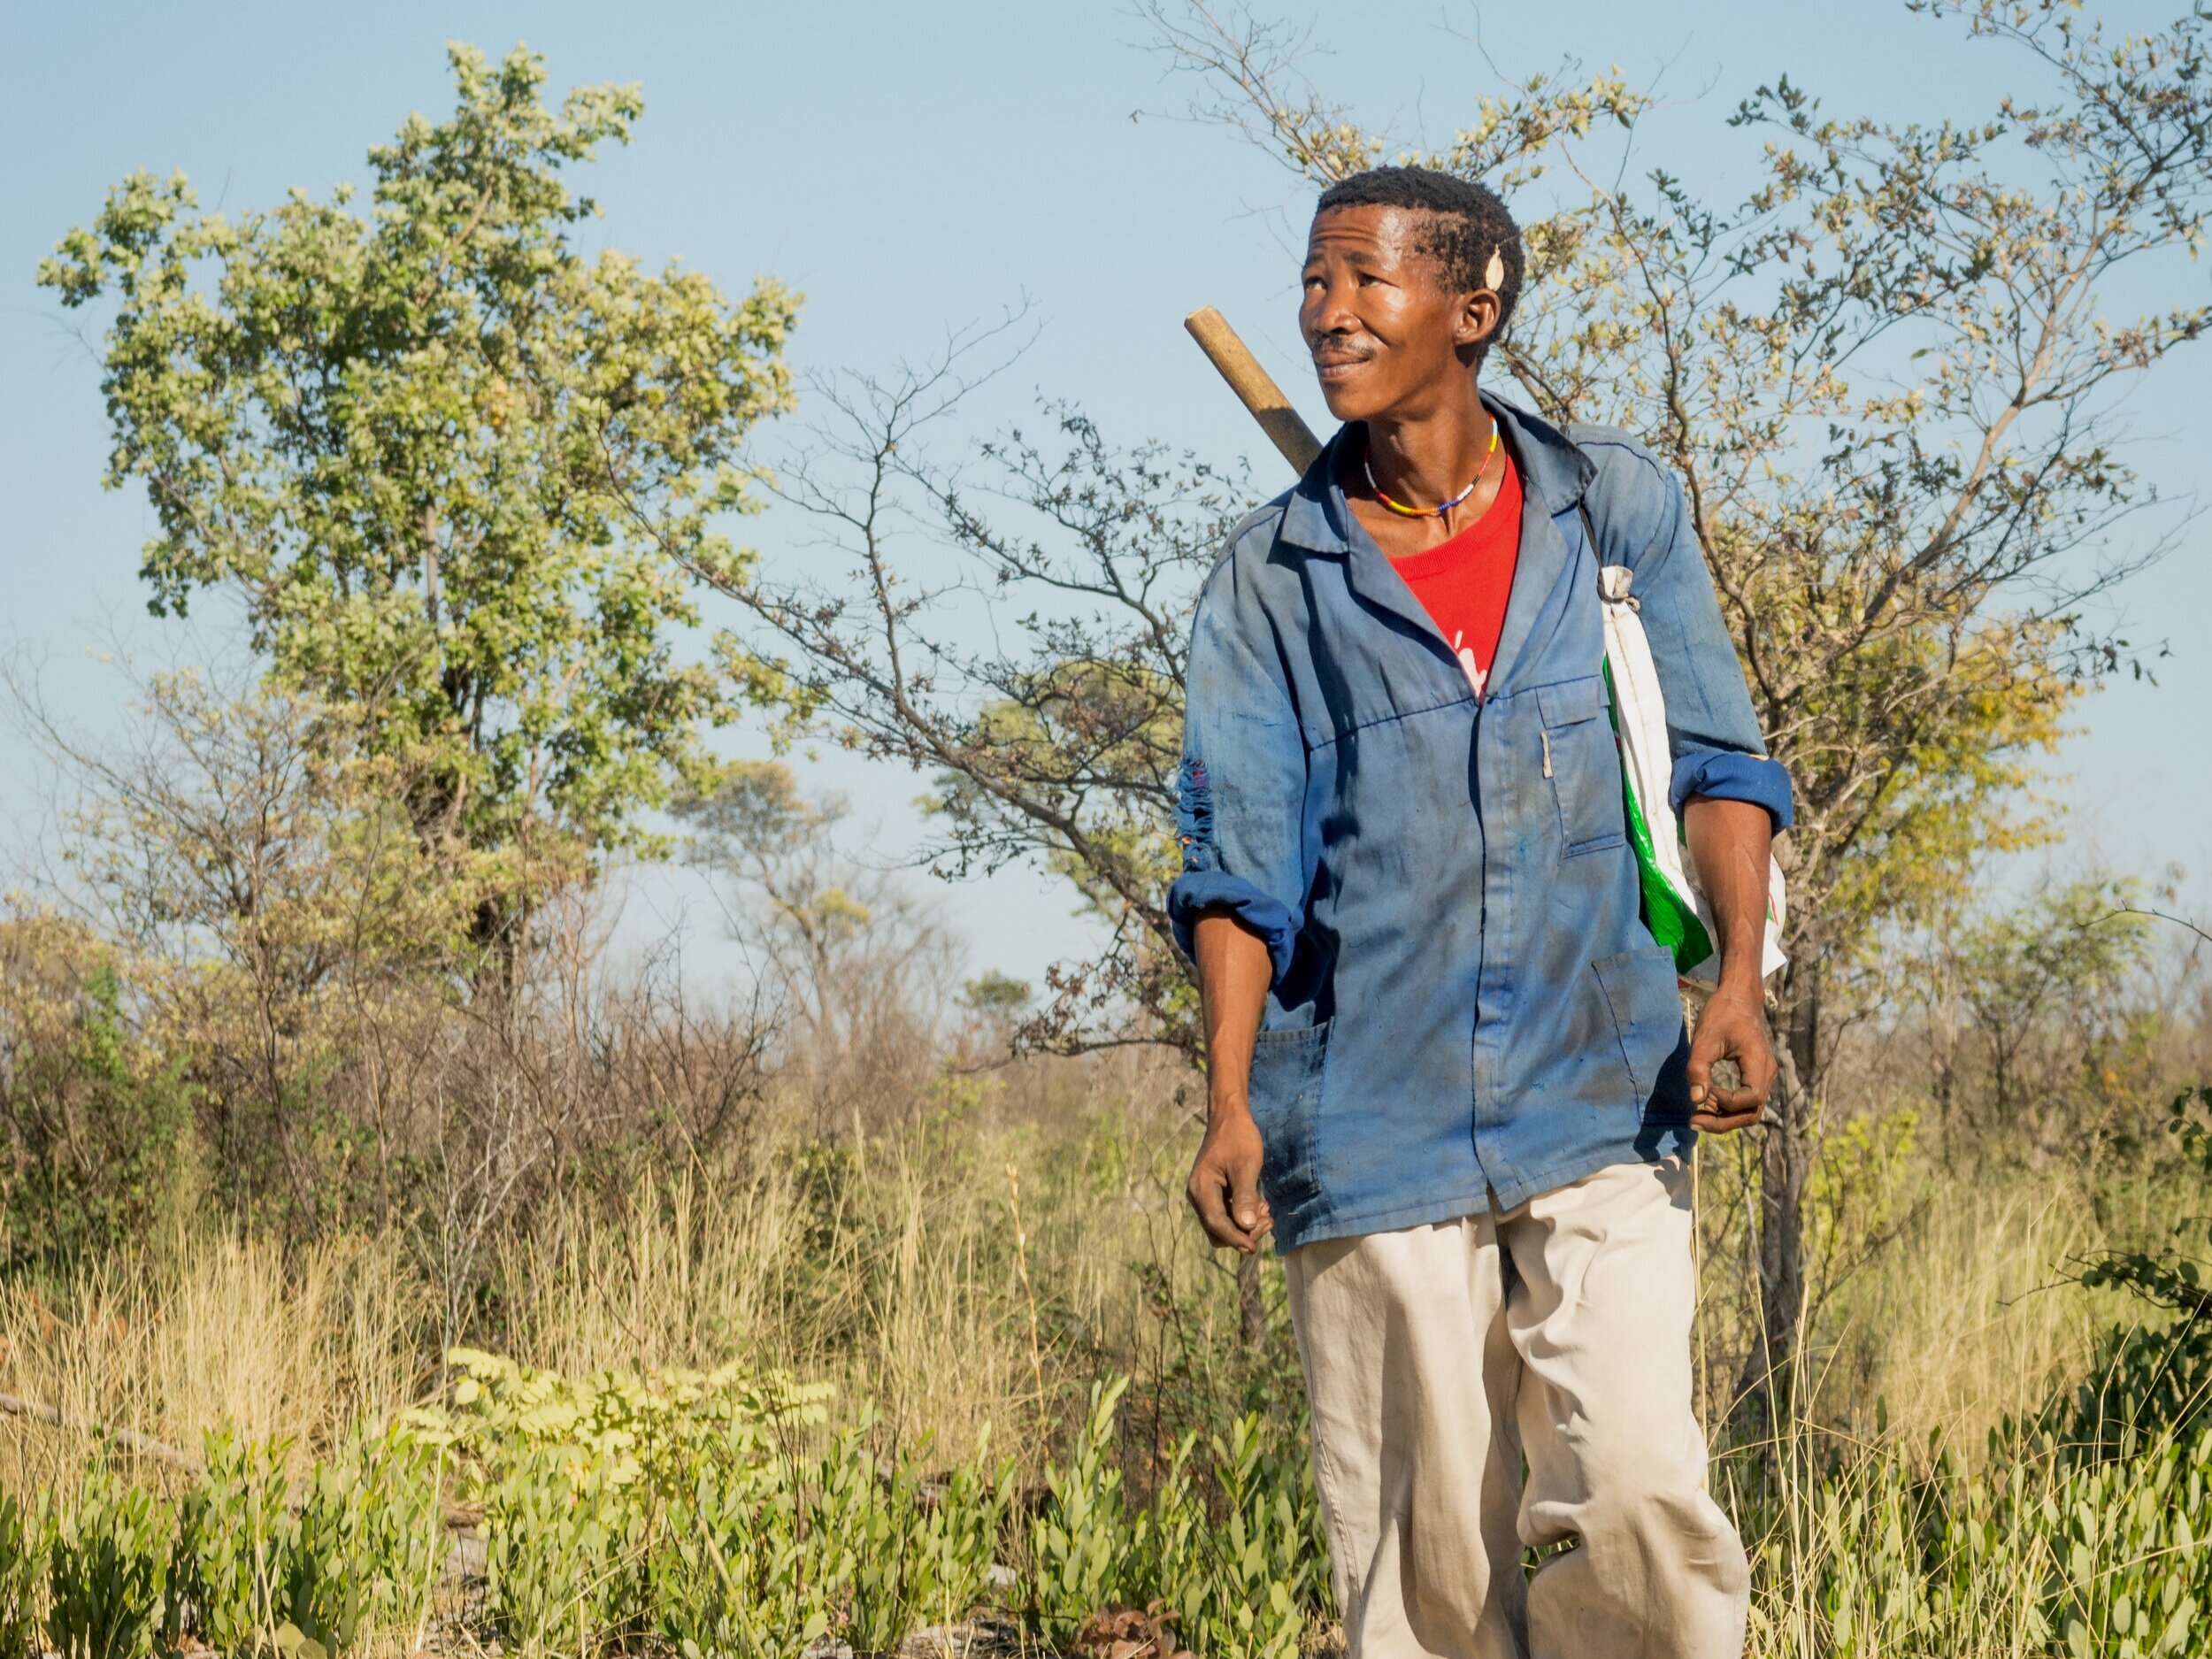 Demonstrating proof of concept. - Pilot projects in Southern Africa are testing the reintroduction of Indigenous Fire Management in real world conditions. Learn more about where we work and our pilot projects in the Tsodilo Hills, Chobe and the Central Kalahari Game Reserve,, Botswana.